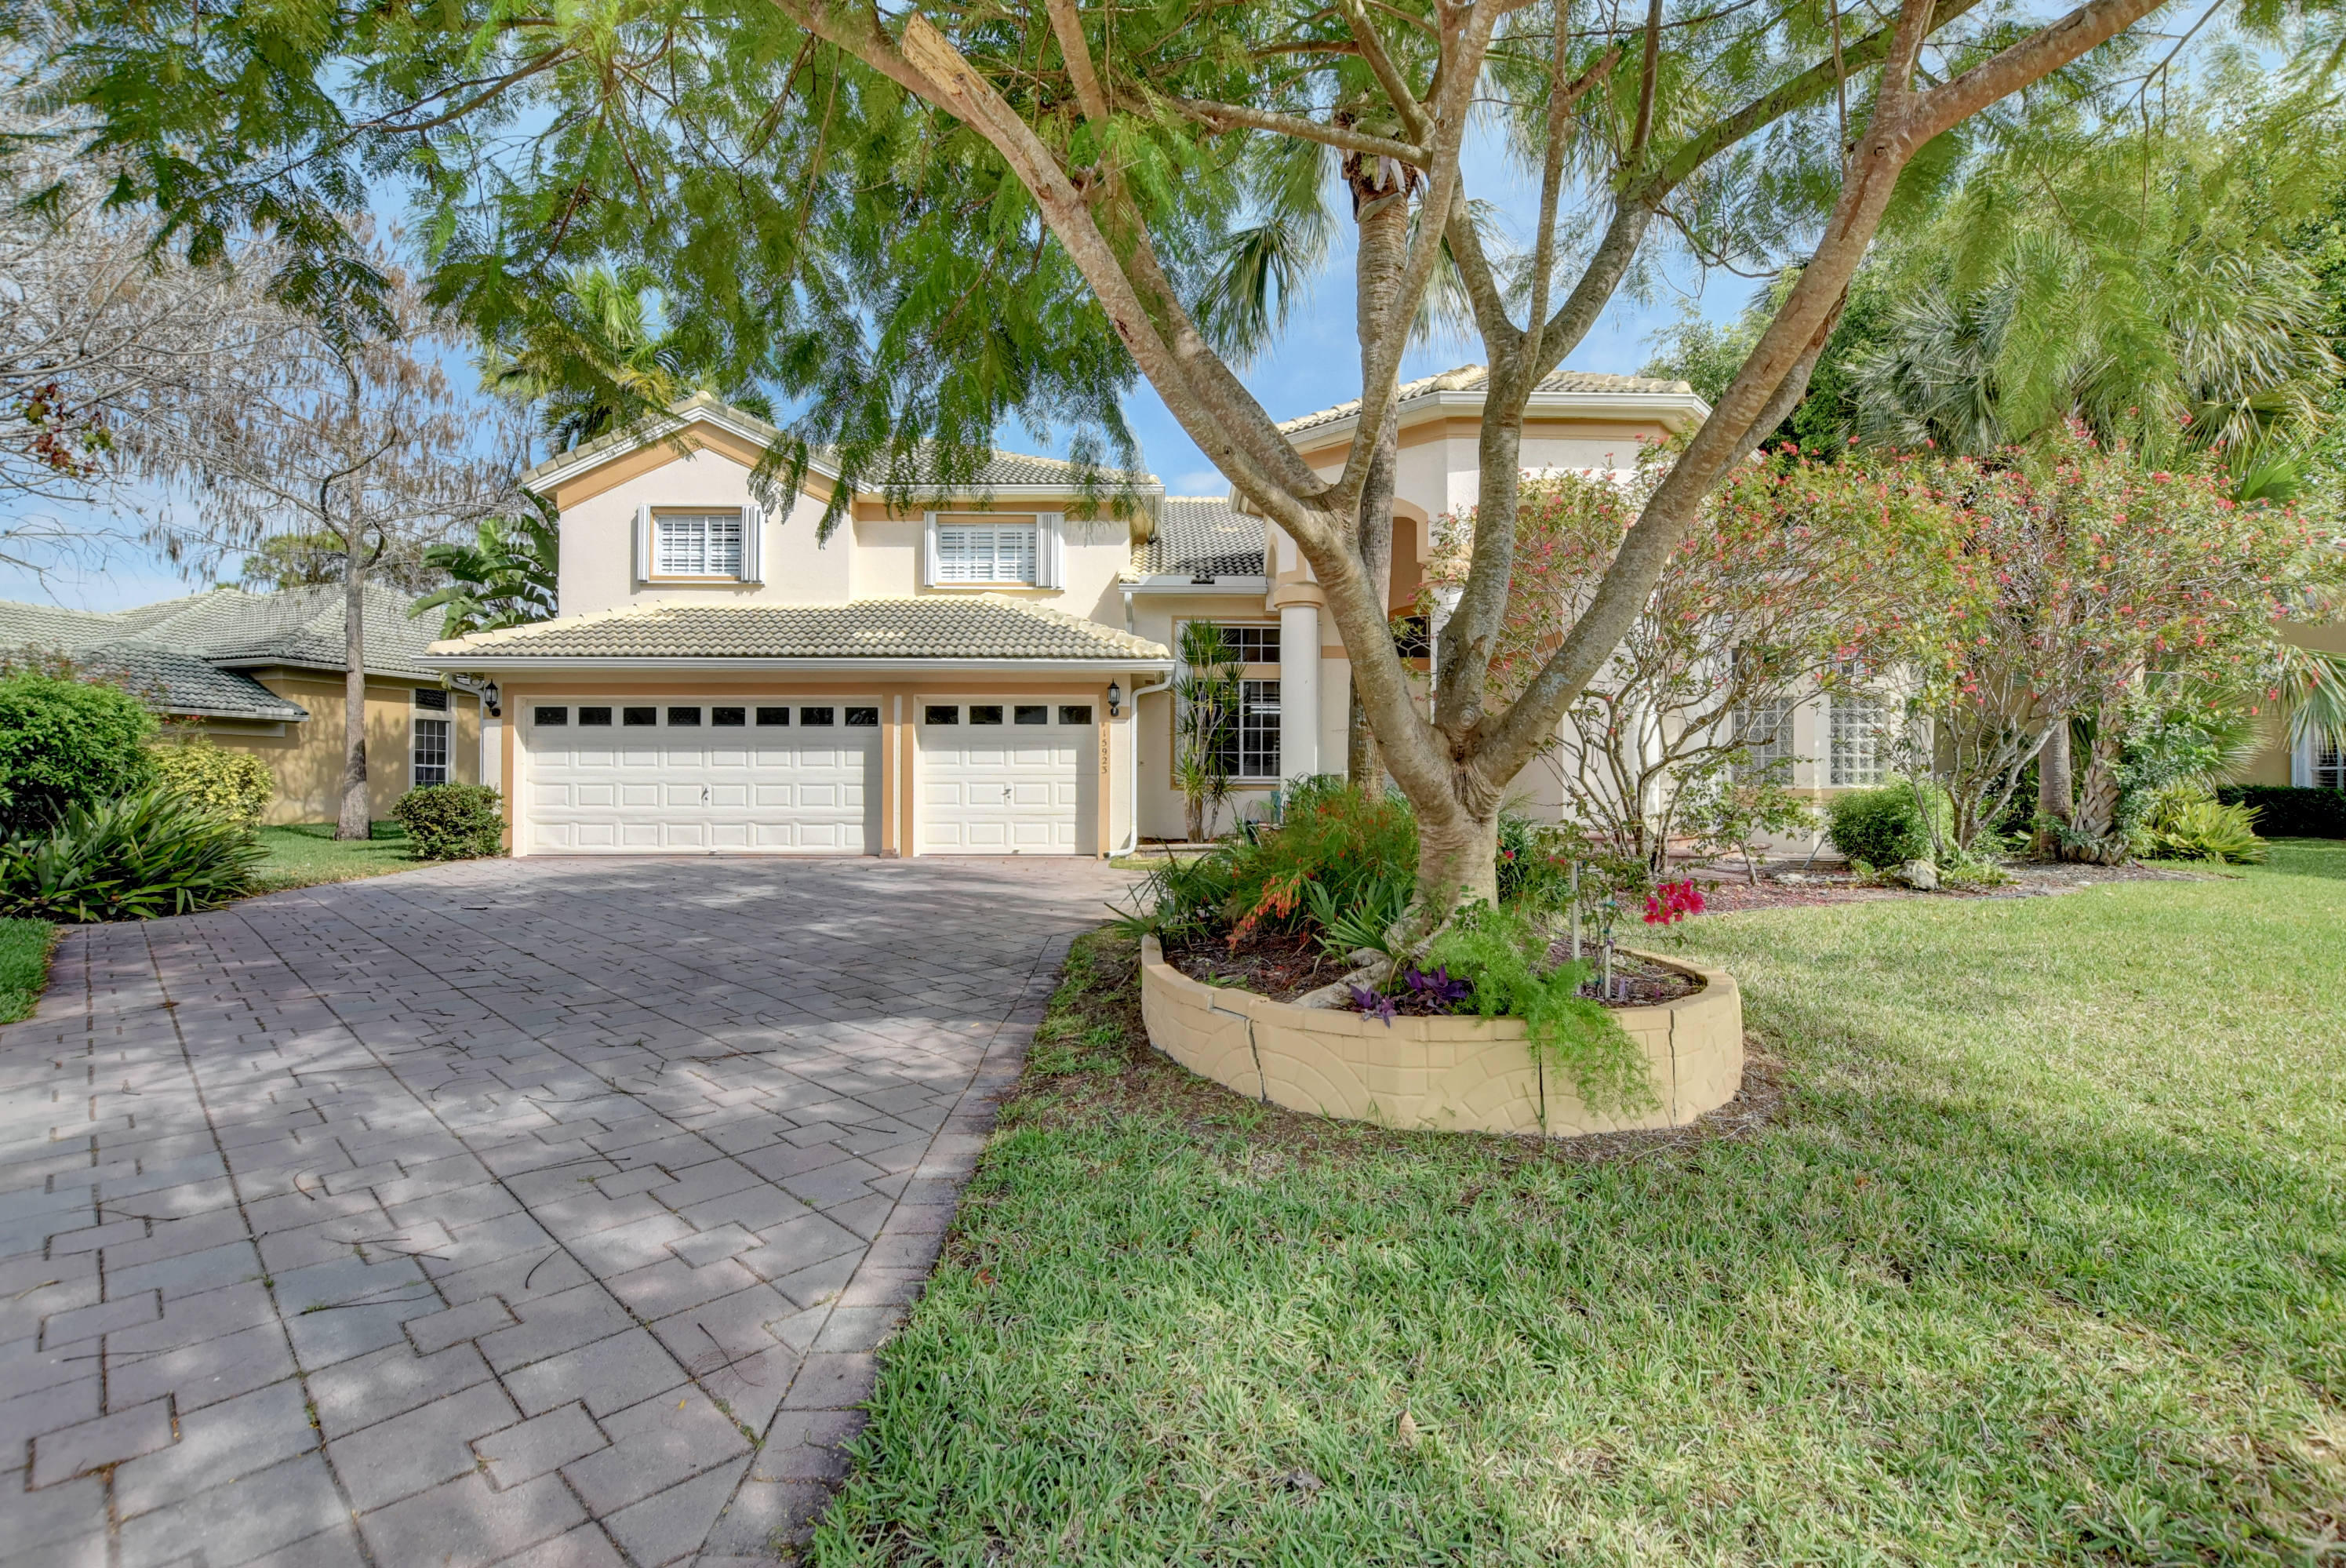 15923 Cypress Park Drive, Wellington, Florida 33414, 5 Bedrooms Bedrooms, ,3 BathroomsBathrooms,Single Family,For Sale,BINKS FOREST / THE LANDINGS AT WELLINGTON,Cypress Park,RX-10508262